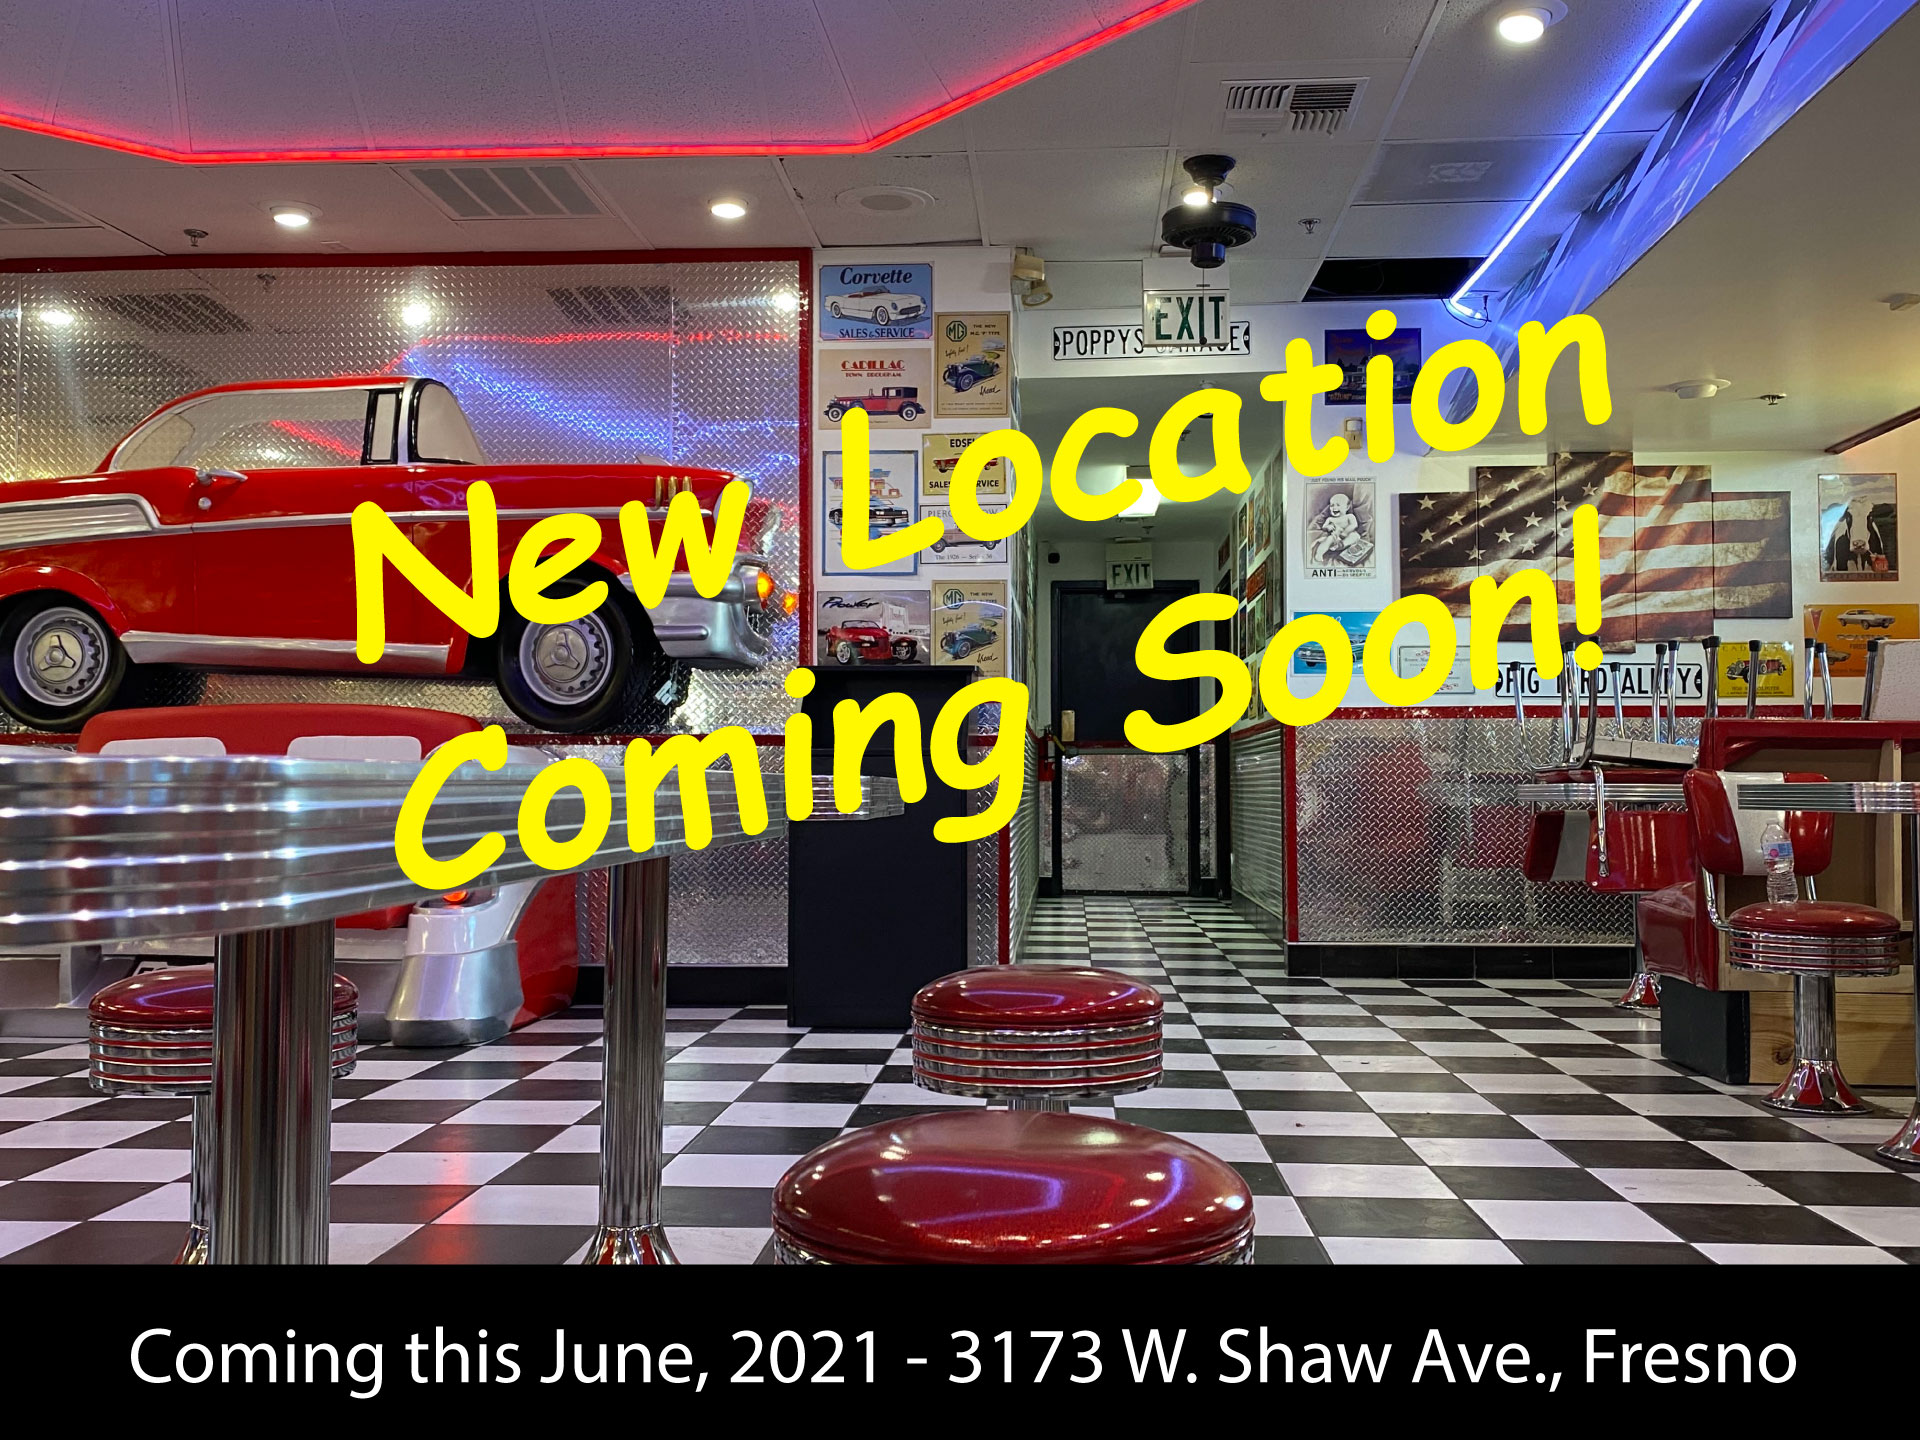 Triangle Drive In - New Location on Shaw and Marks in Fresno, CA